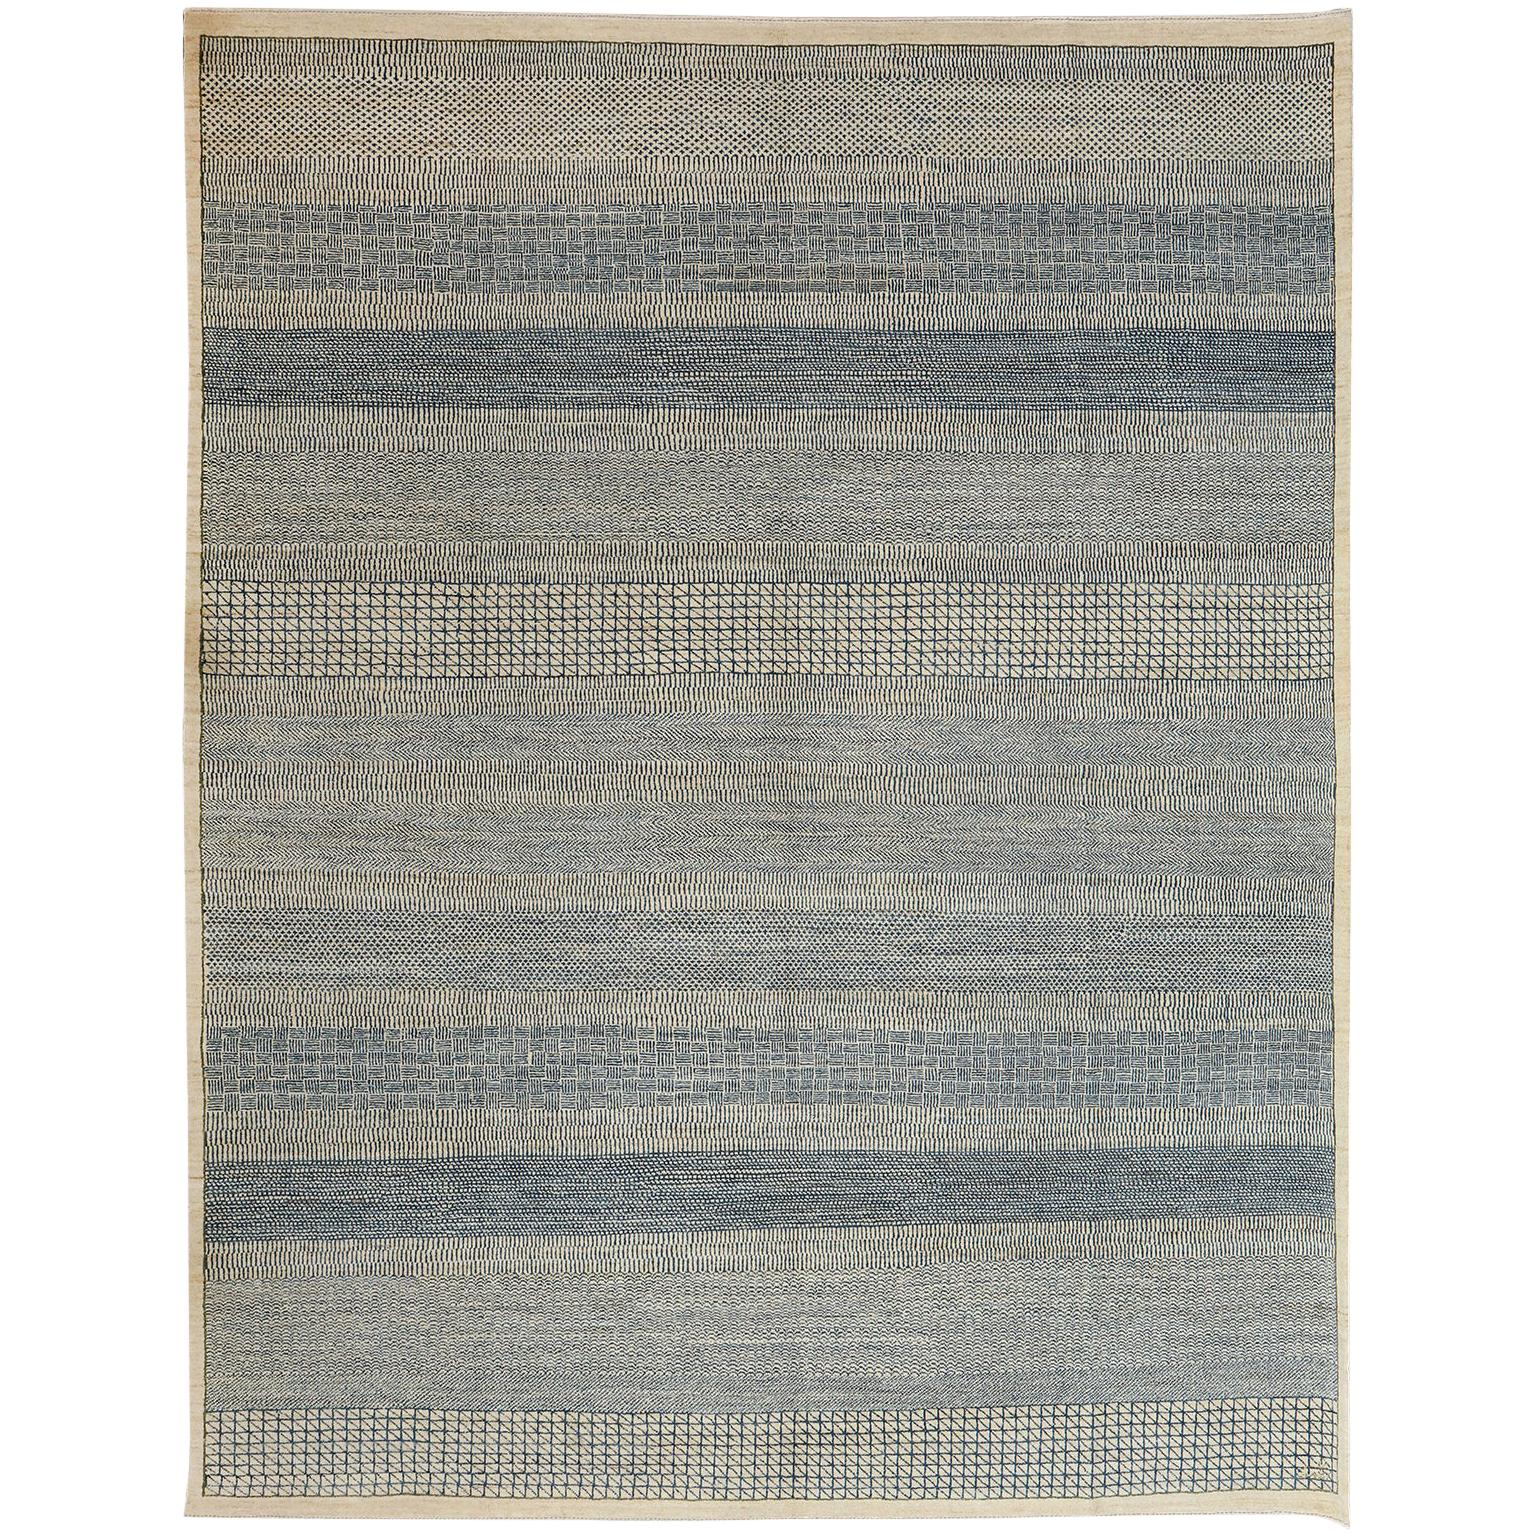 Contemporary Architectural Persian Area Rug in Blue and Cream Wool